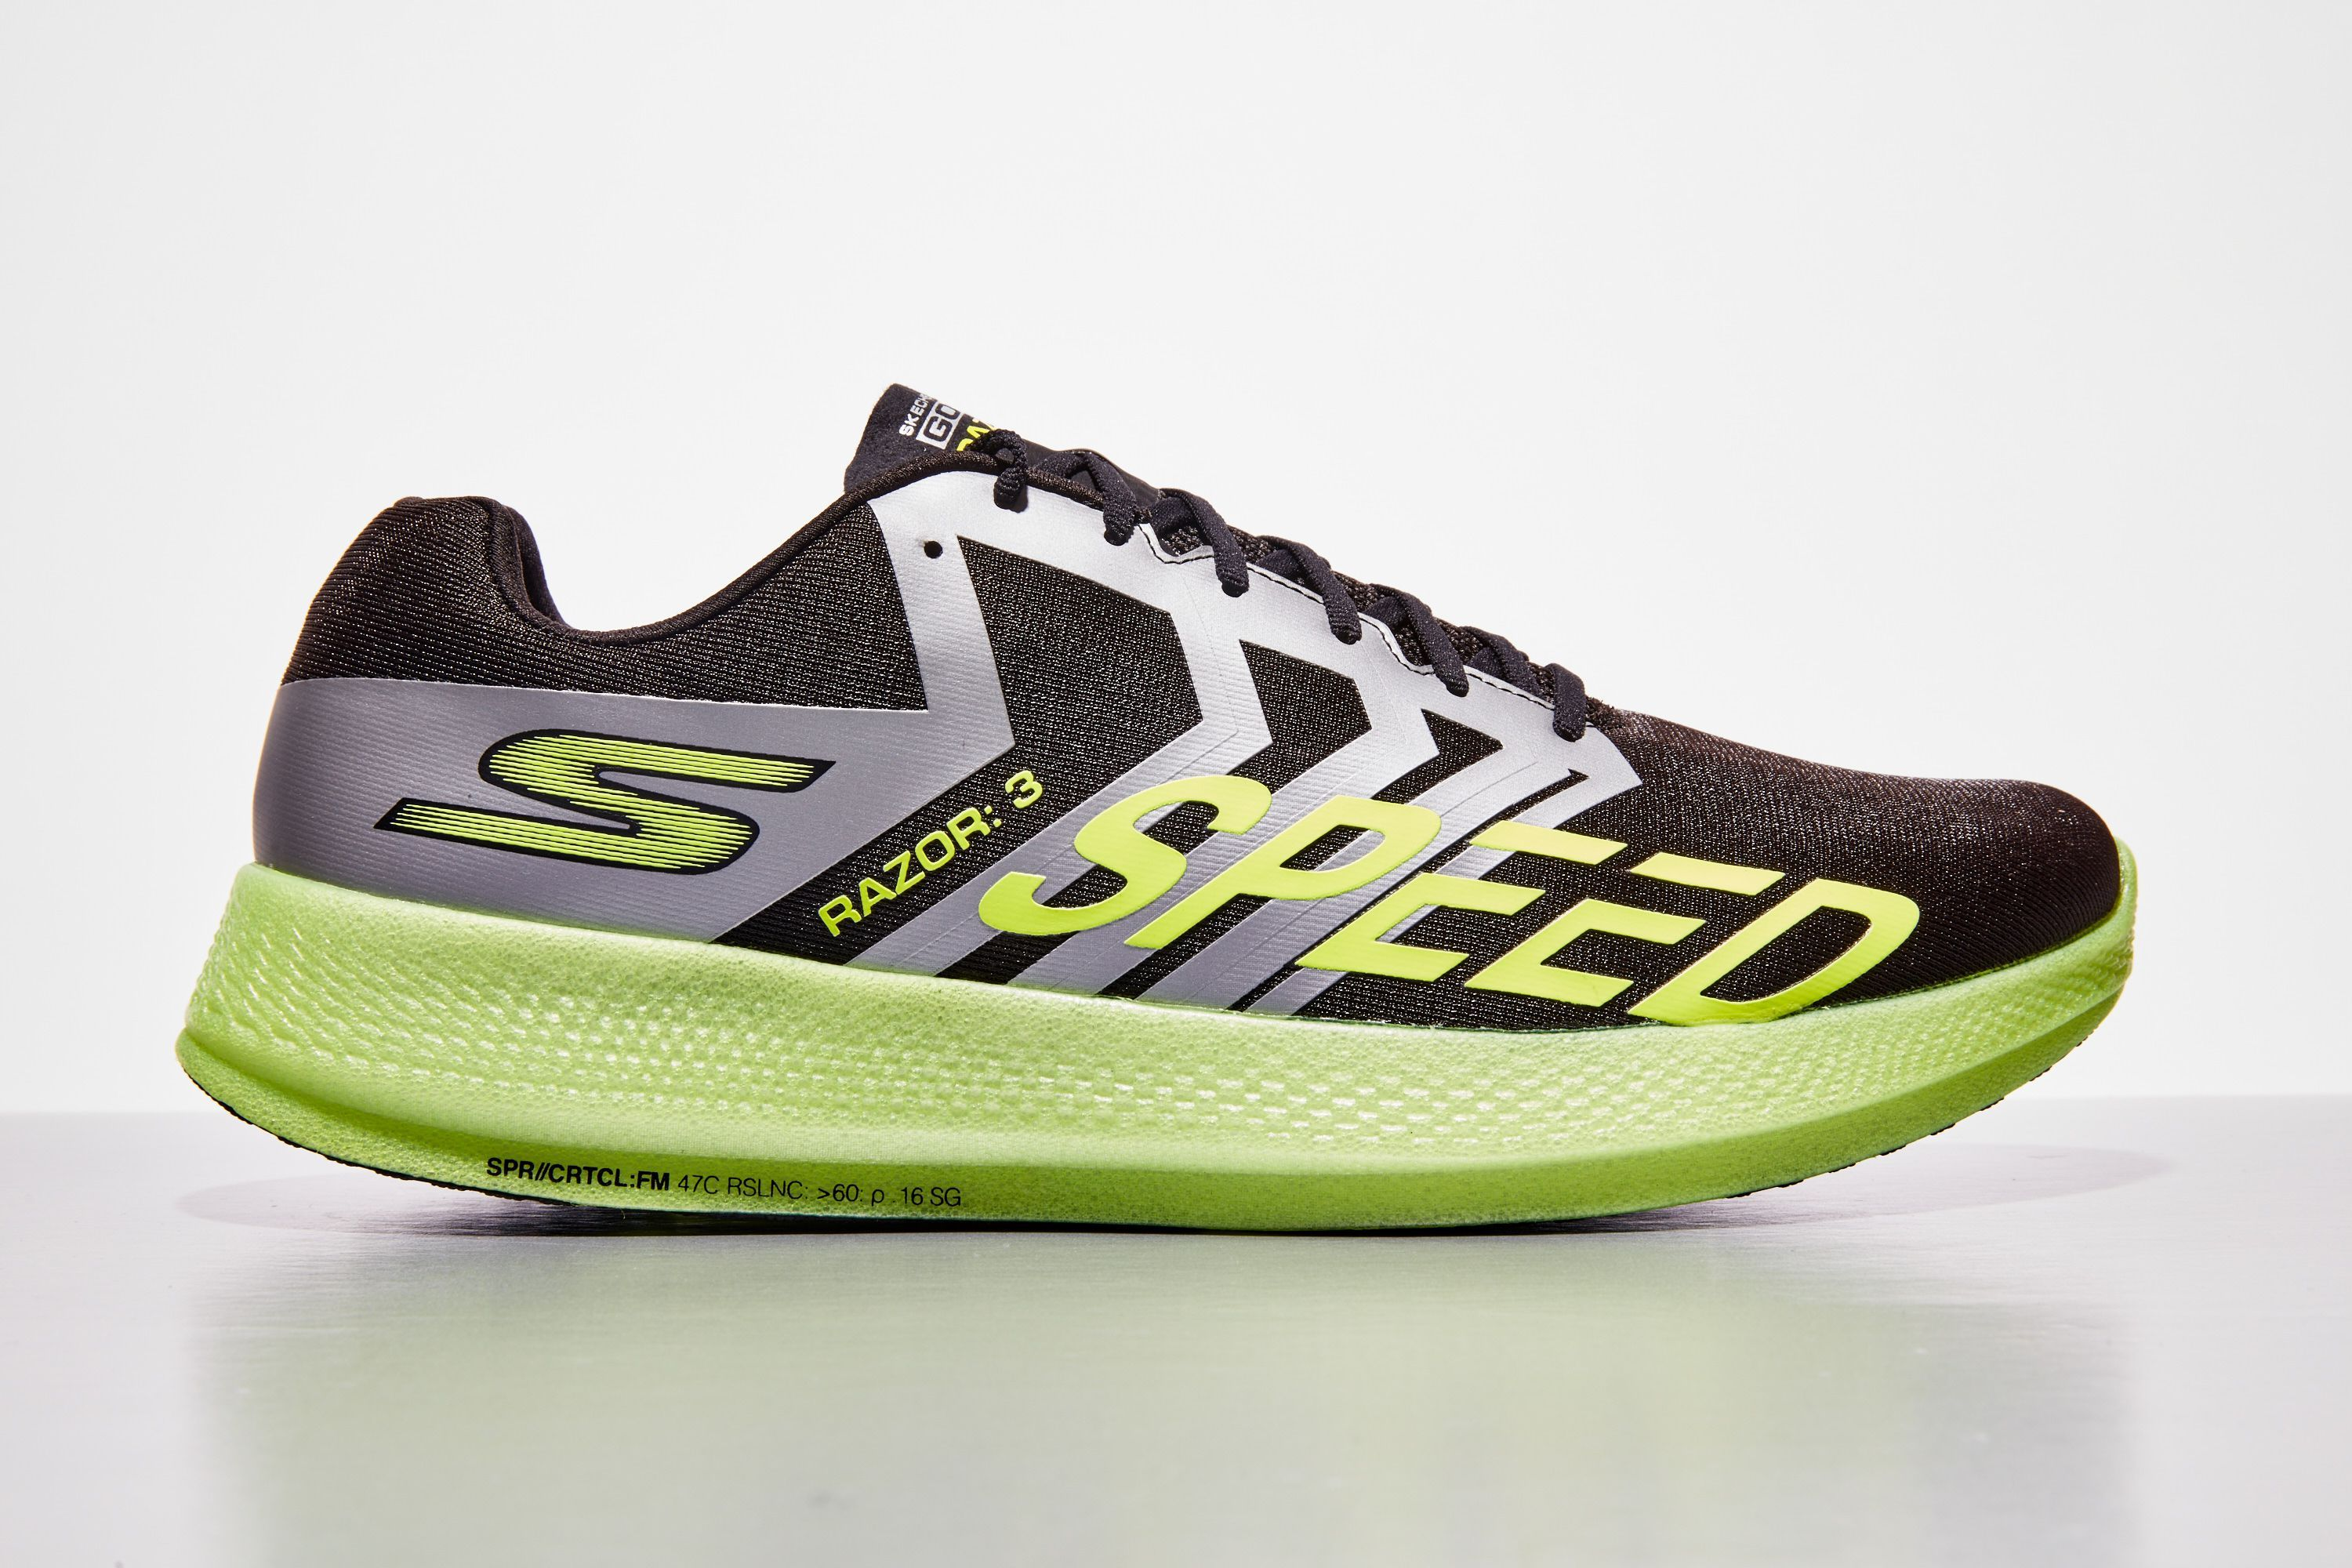 77c4a81aee44 Skechers GOrun Razor 3 Hyper — Fast Racing Shoes